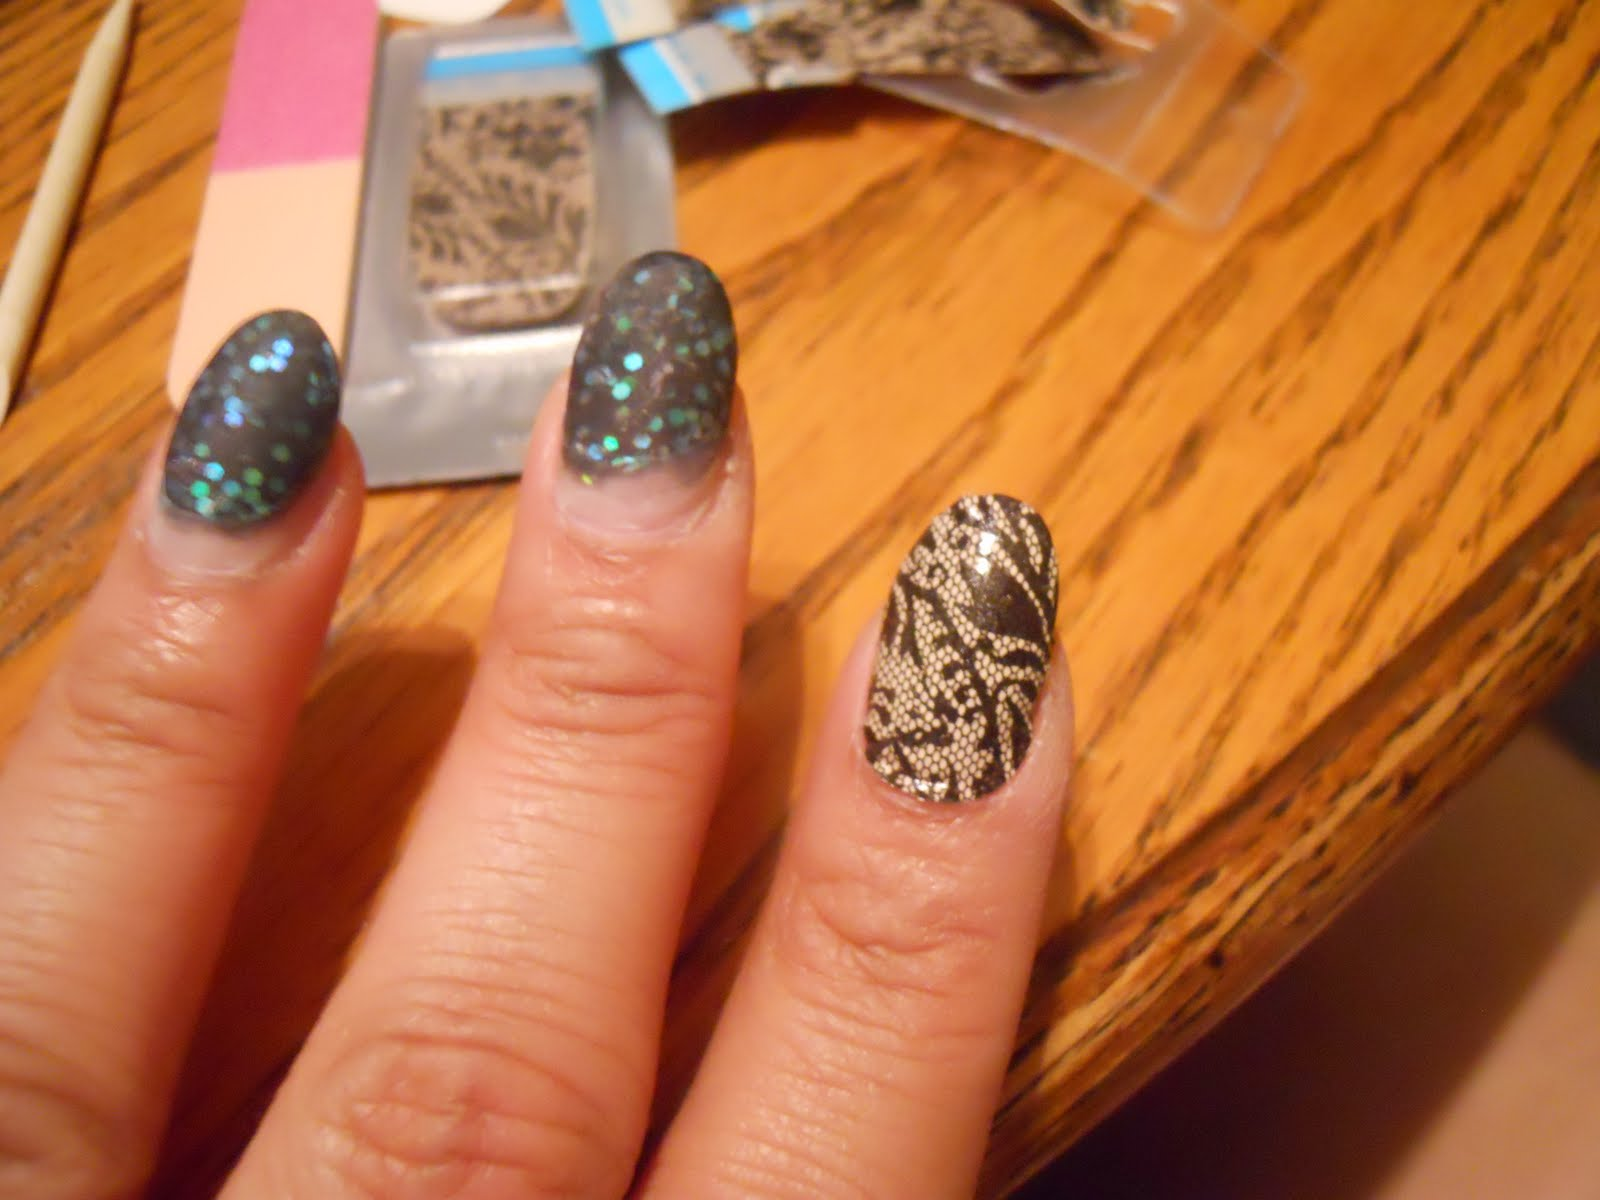 yummy411.get it here!: I'm trying the Sally Hansen Salon